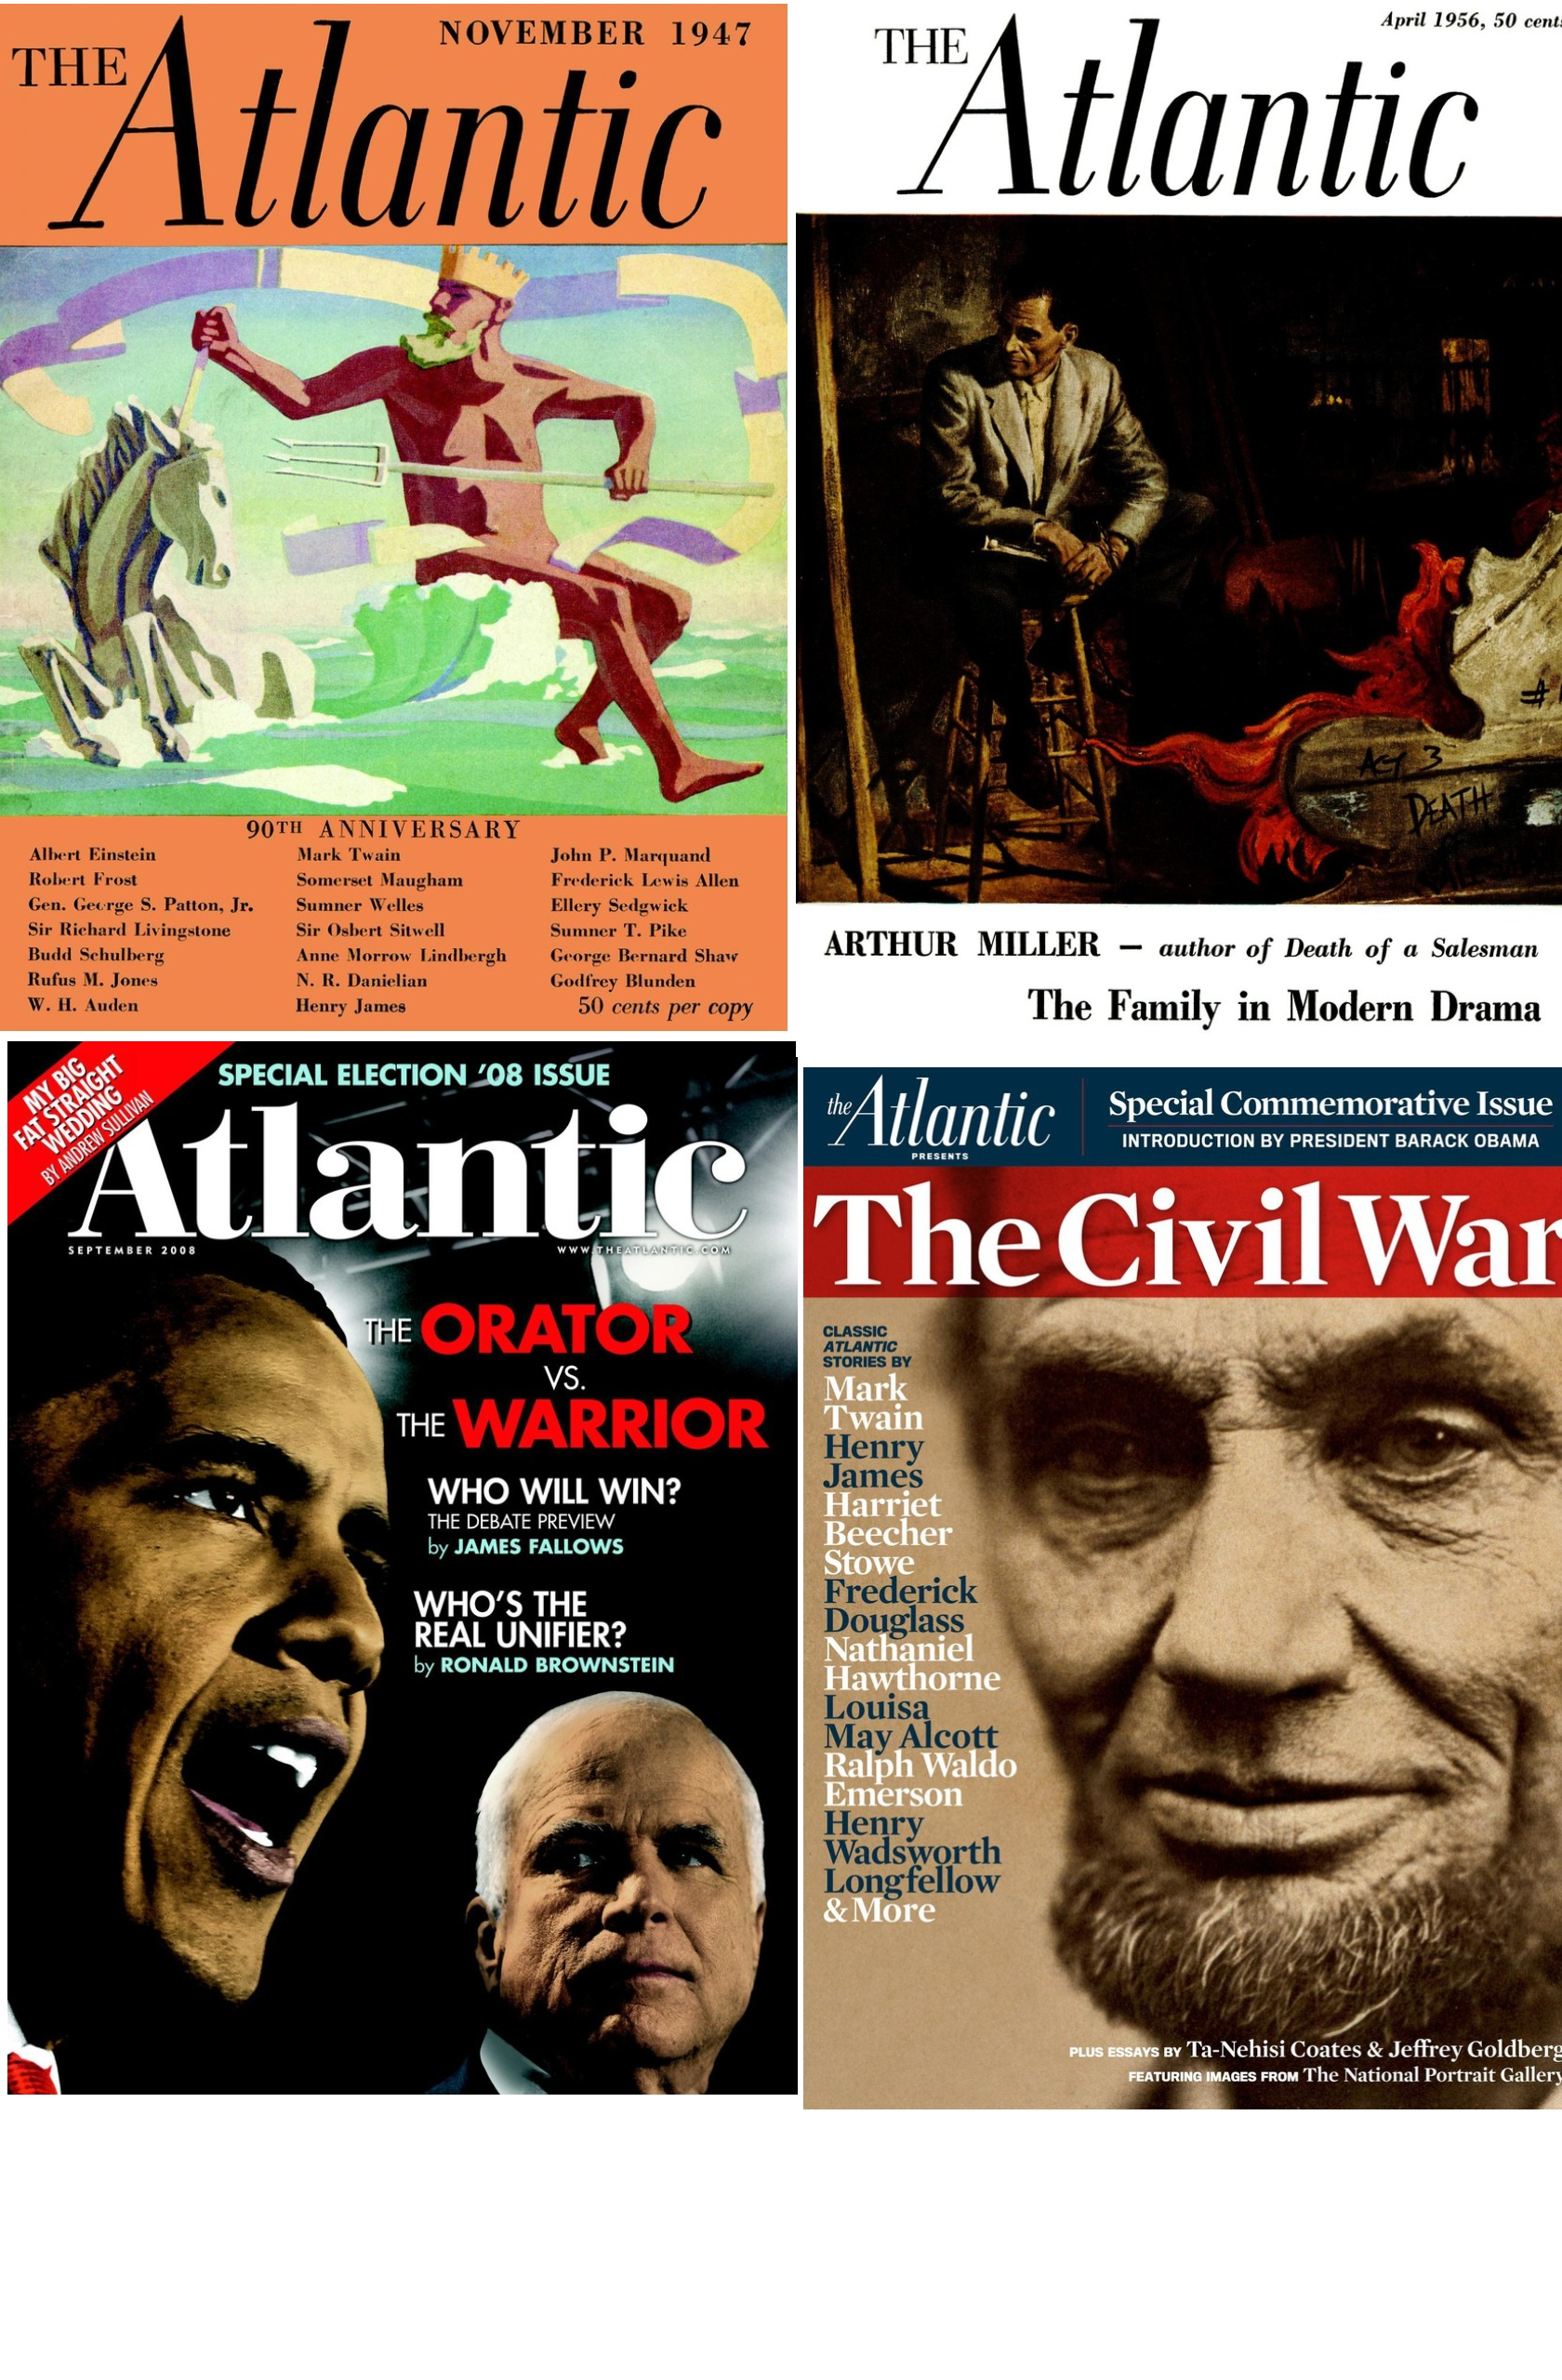 Images of the front covers of the Atlantic Magazine.